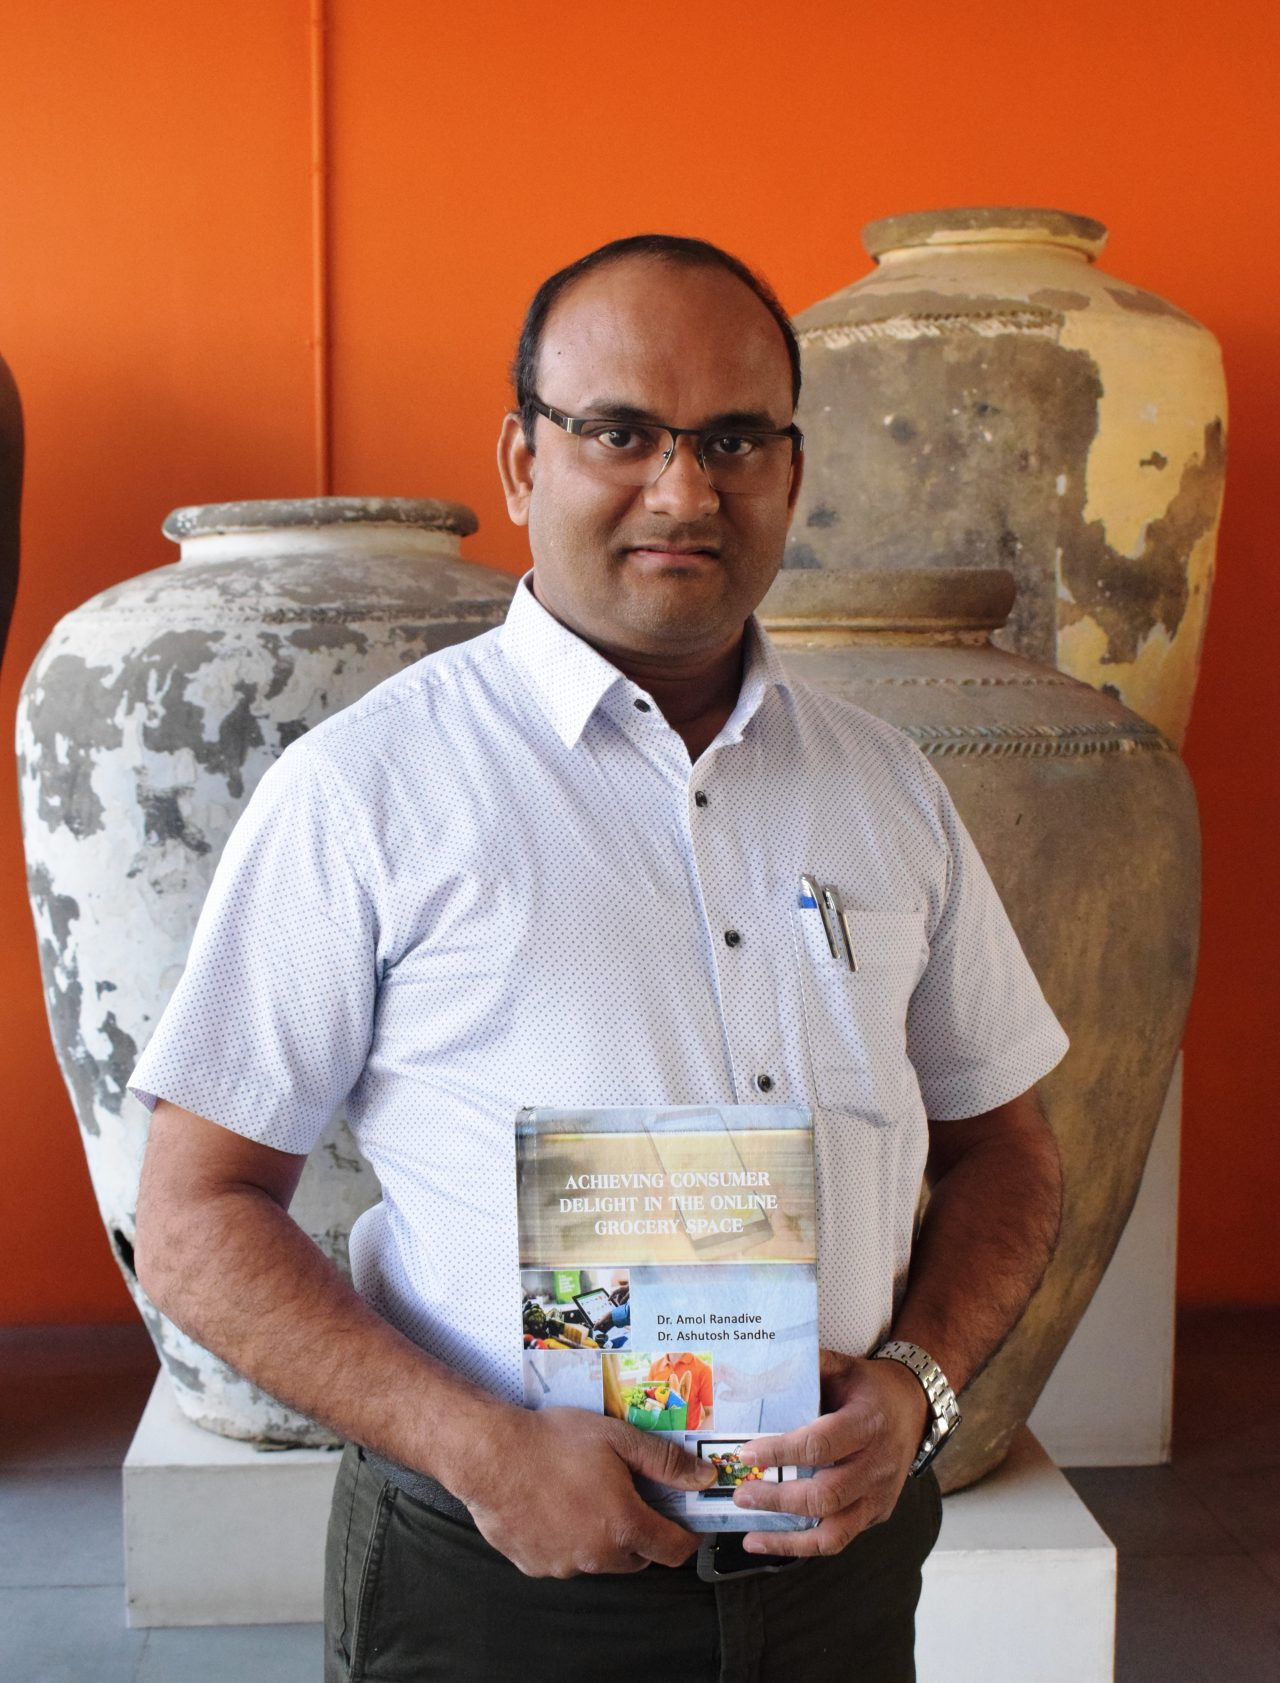 Research on Internet Grocery Consumers by NUV Assistant Professor